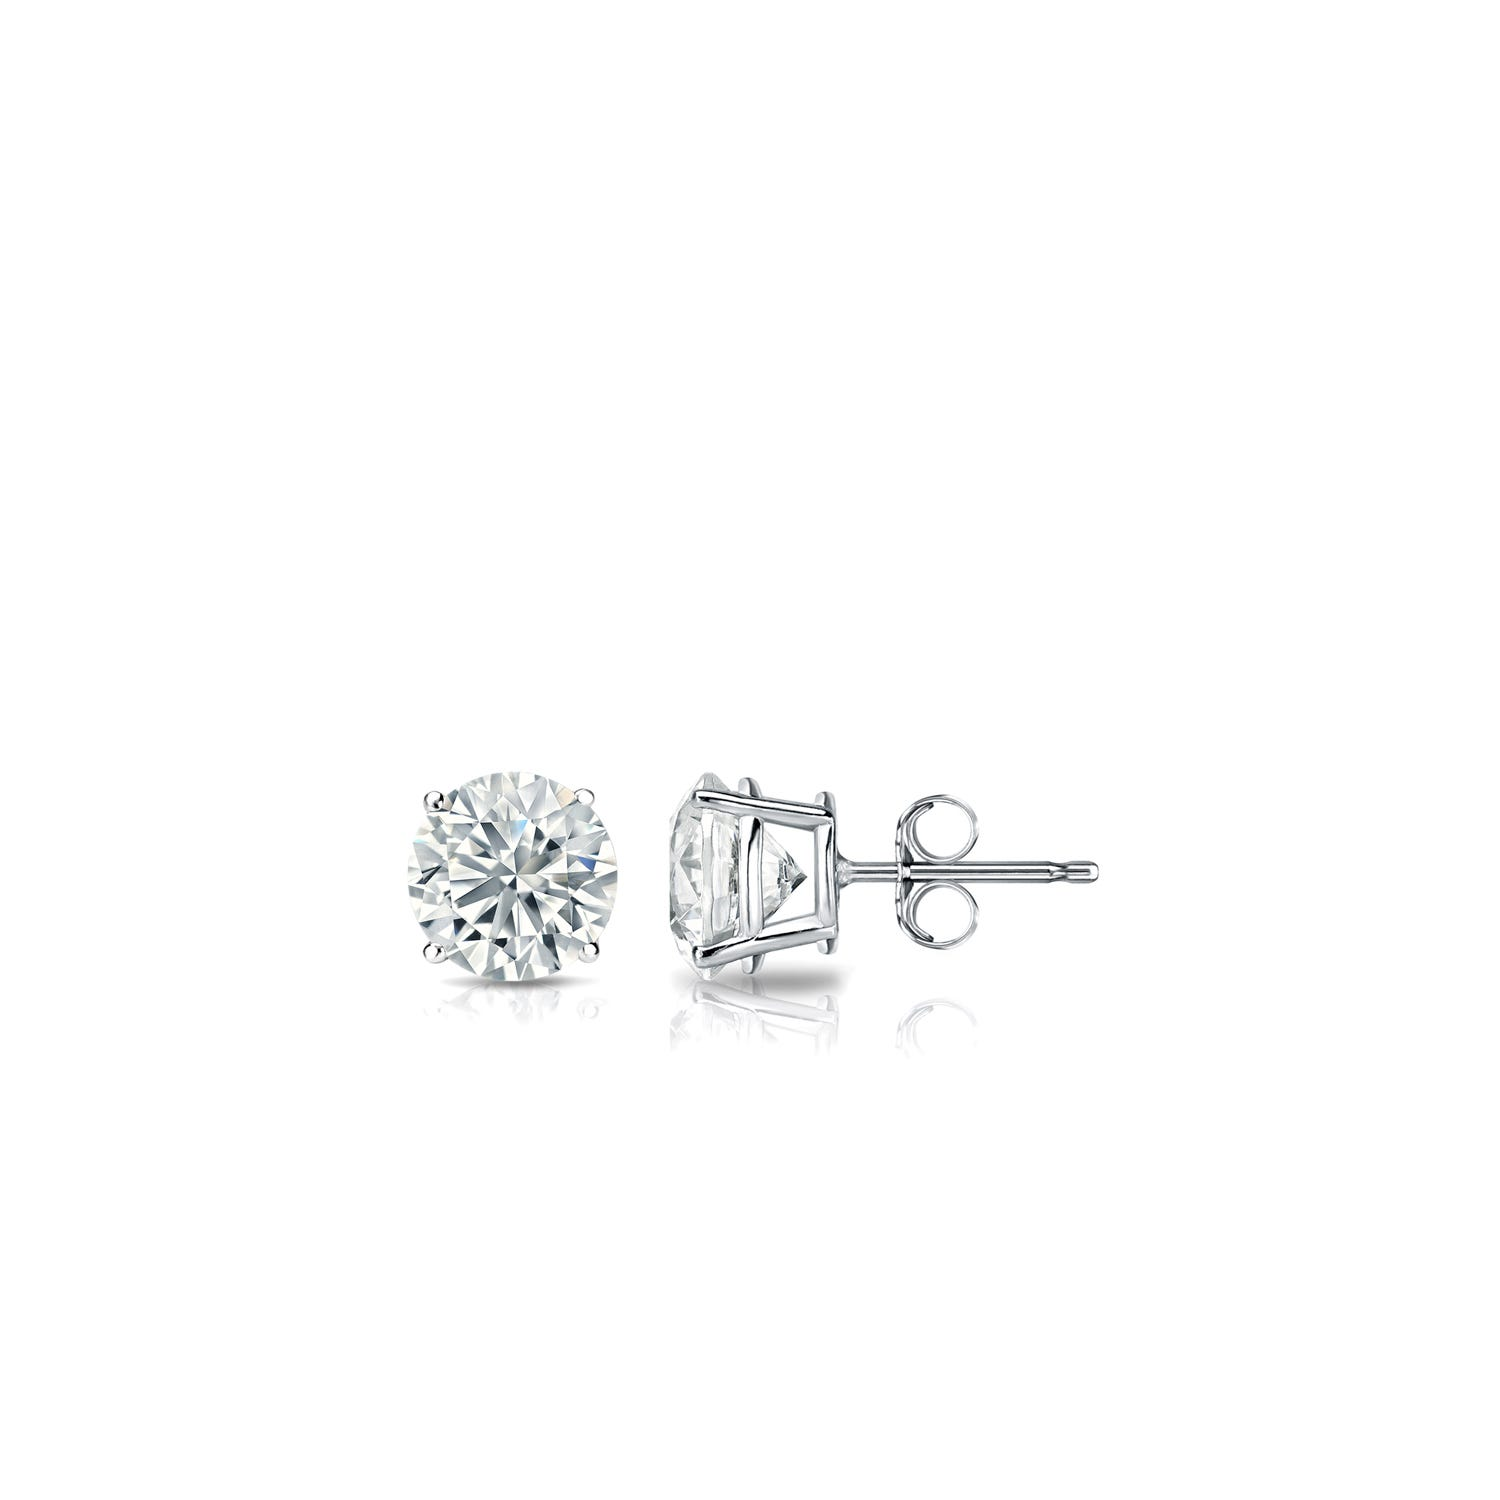 Diamond 1/10ctw. Round Solitaire Stud Earrings (I-J, I1) 18k White Gold